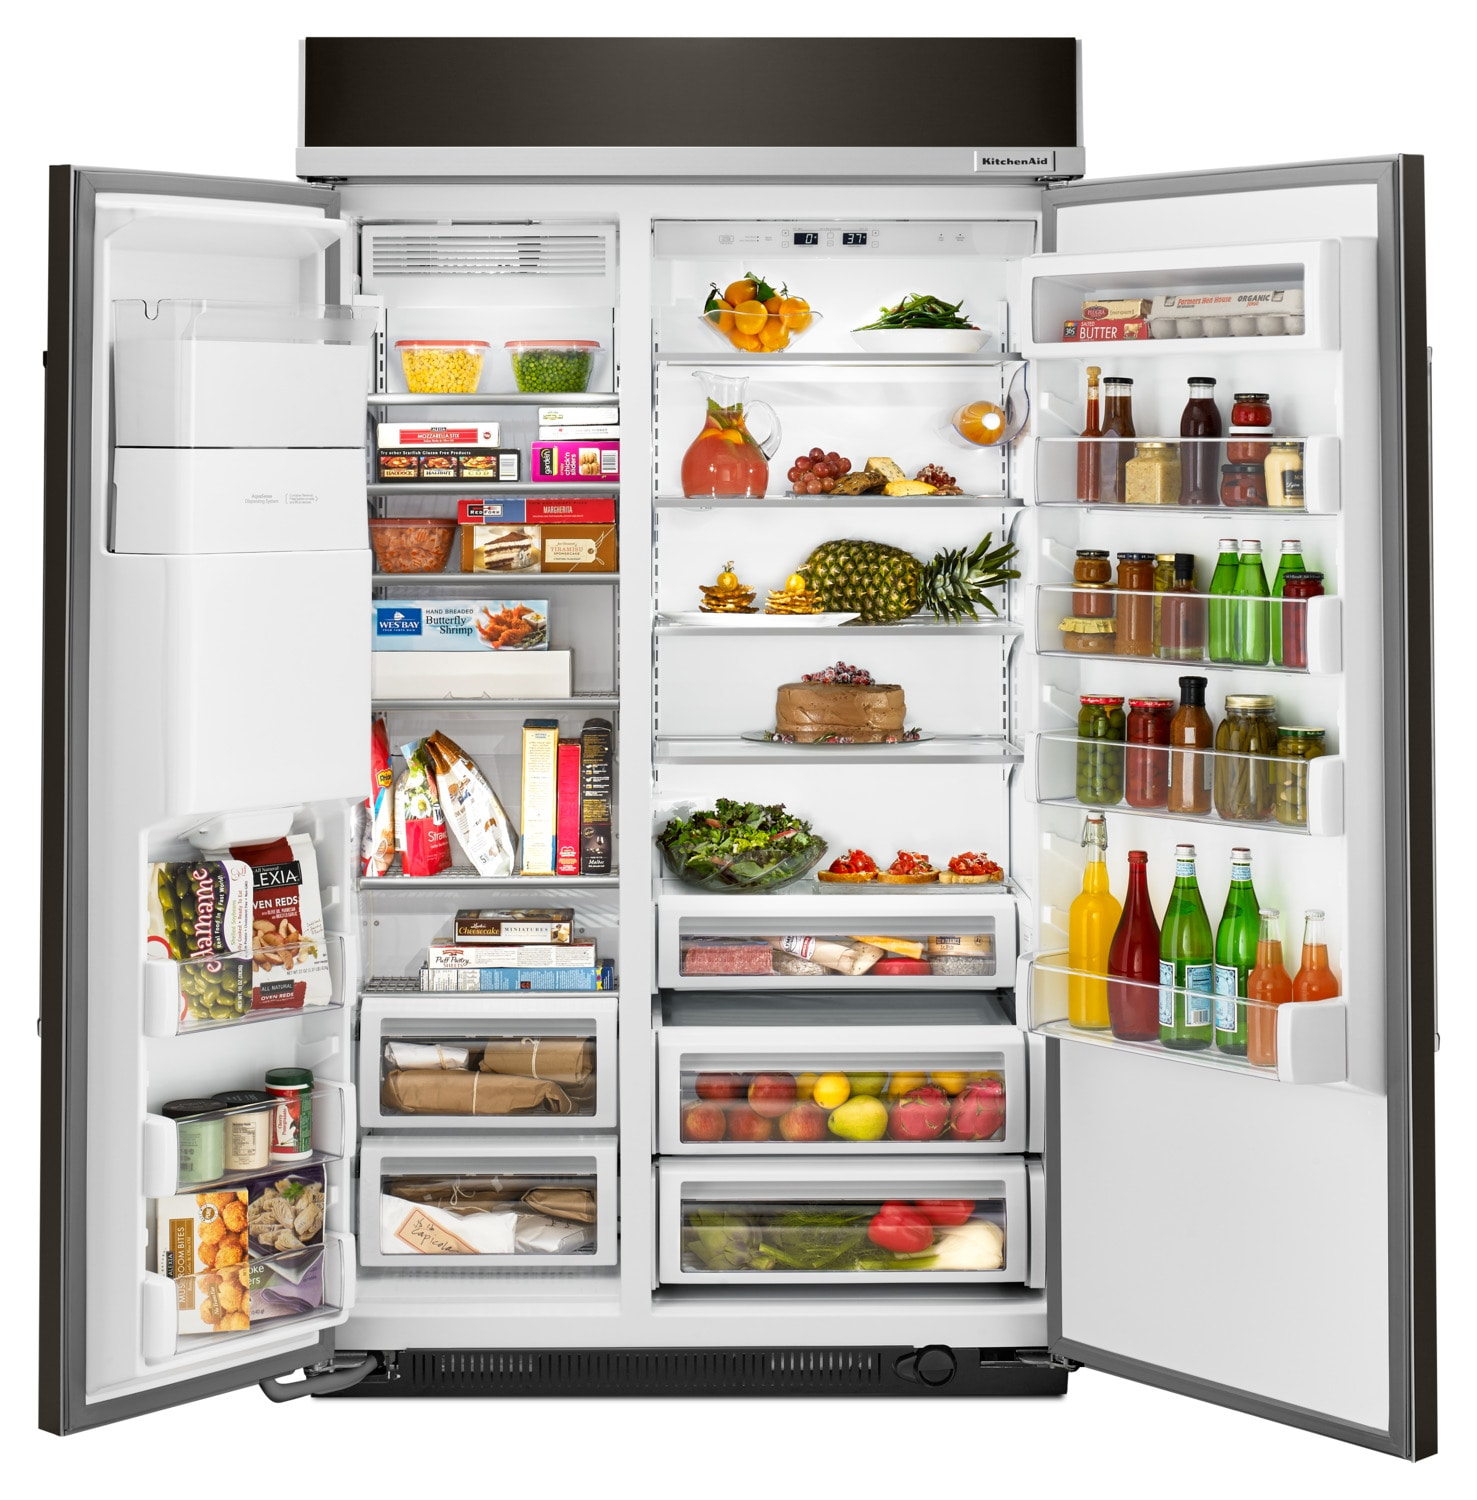 Kitchenaid Black Stainless Steel Side By Side Refrigerator: KitchenAid Black Stainless Steel Side-by-Side Refrigerator (29.5 Cu. Ft) - KBSD608EBS